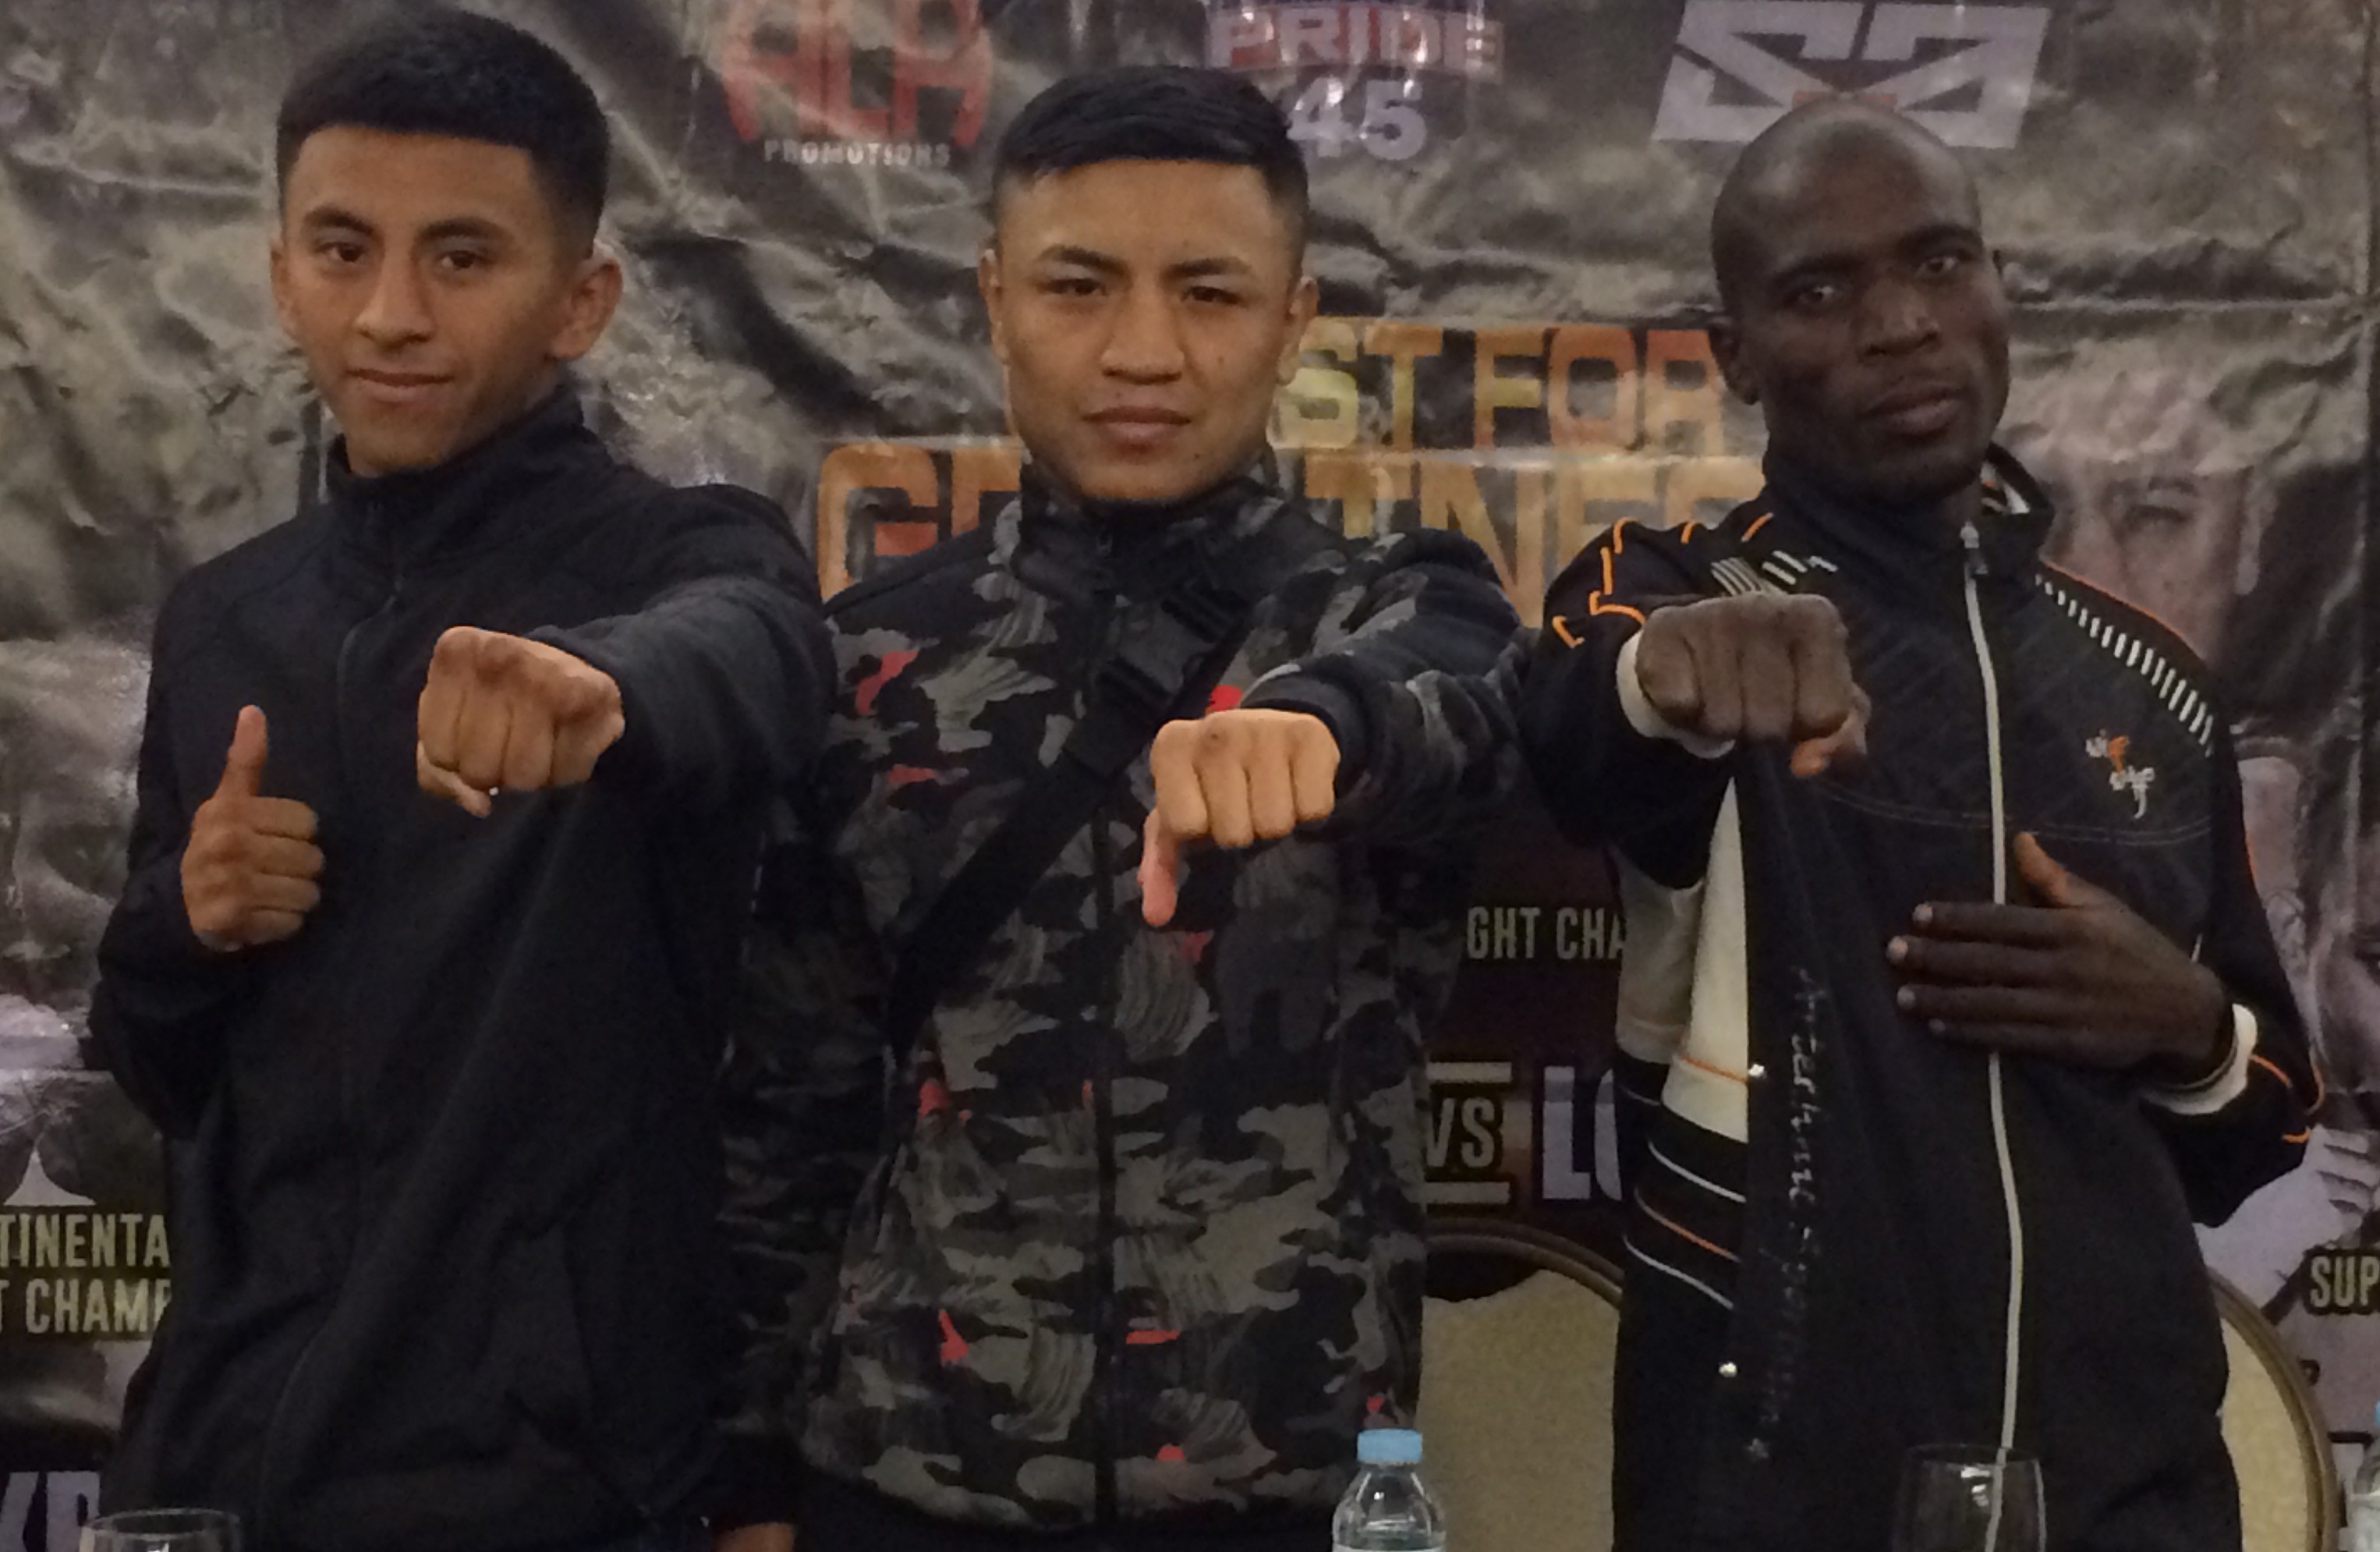 Mexican fighters raring to go versus ALA boxers in Pinoy Pride 45